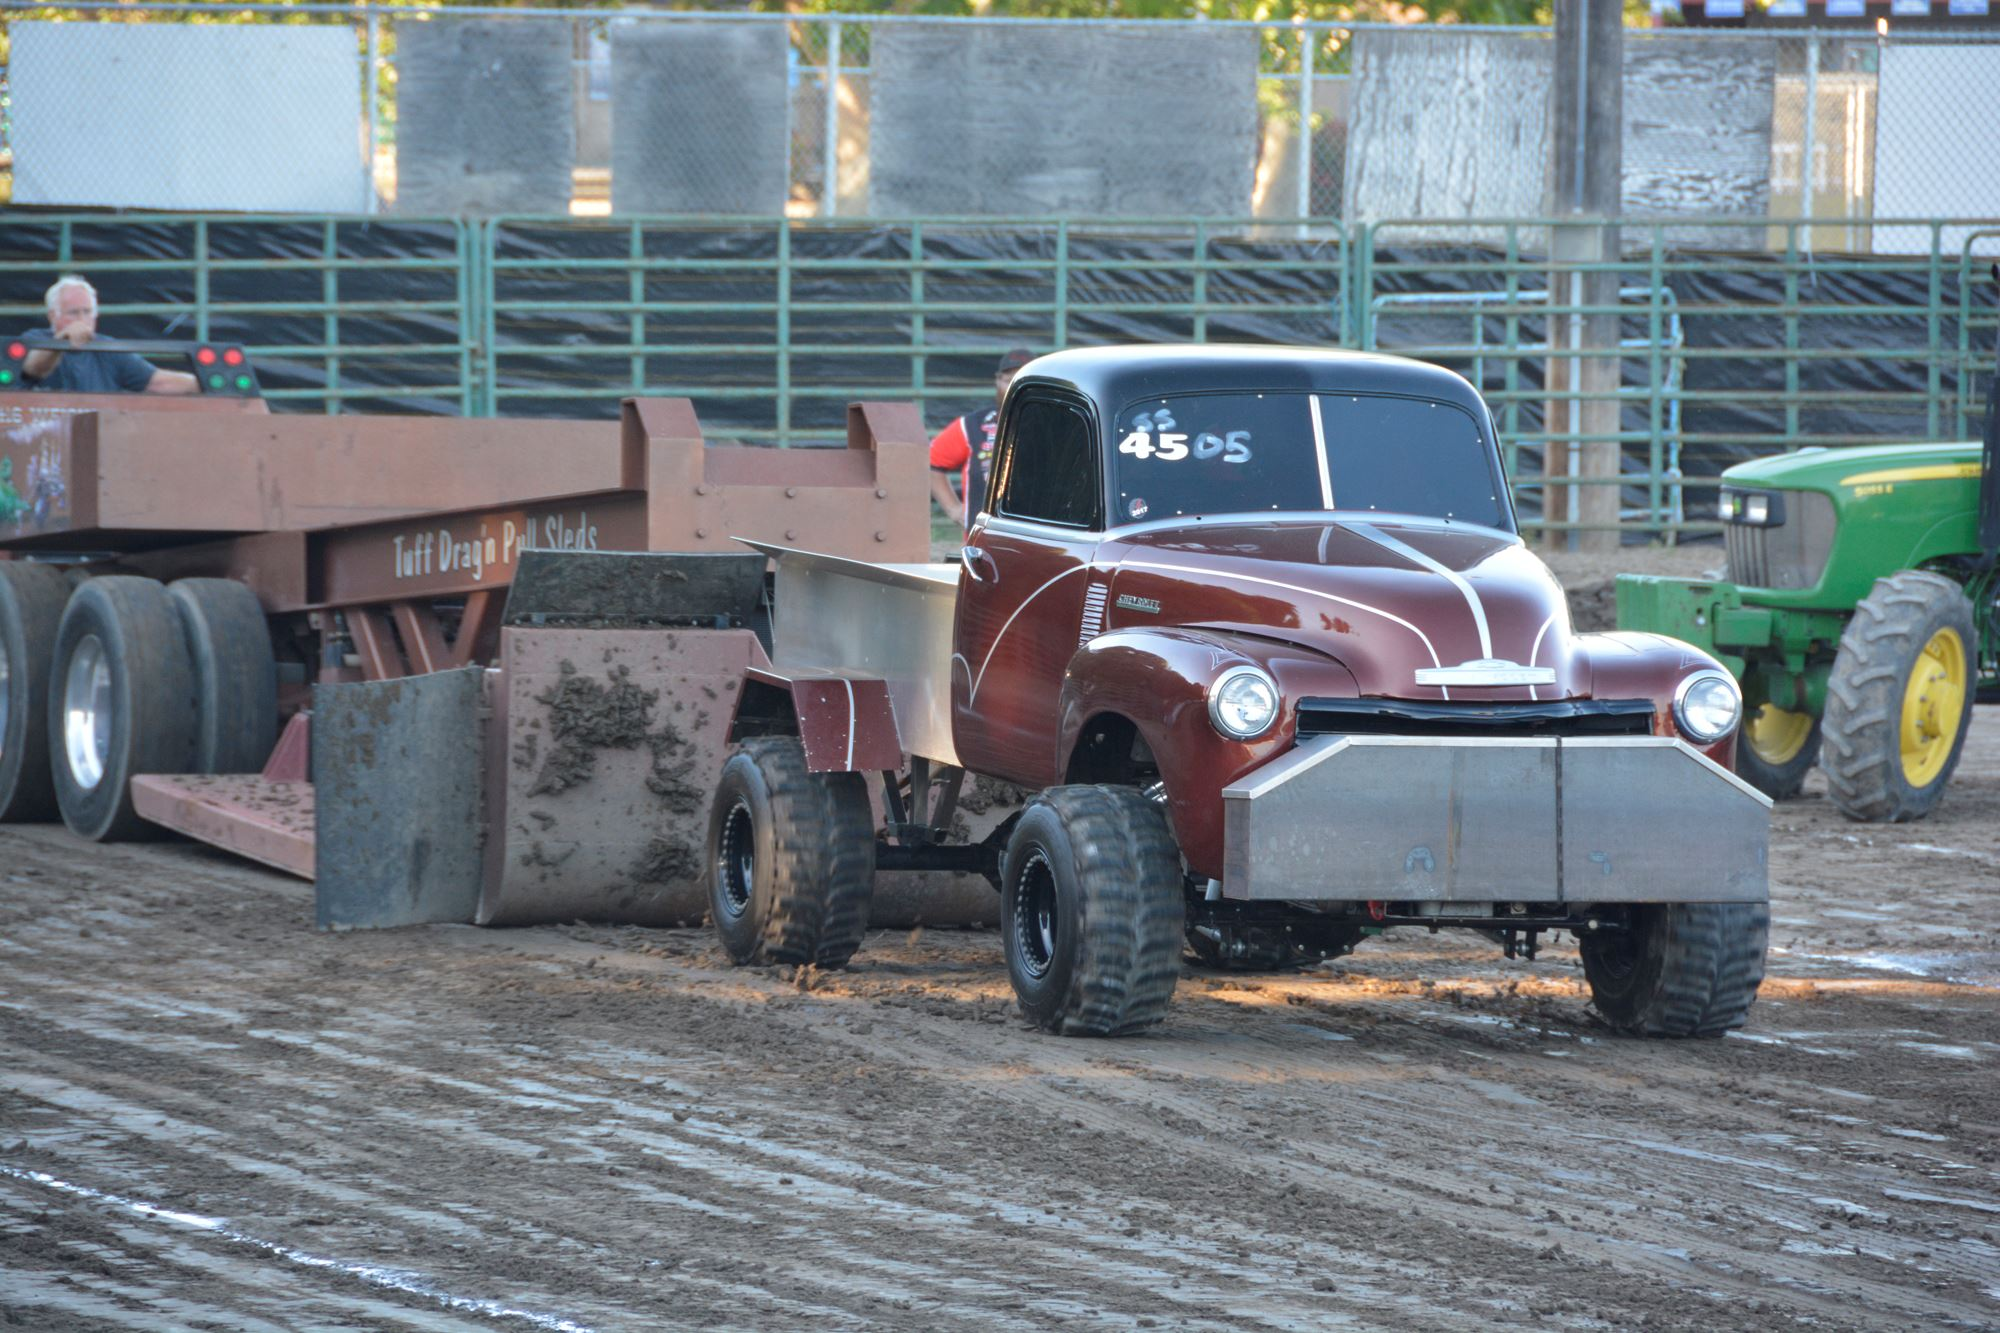 Truck pull in the arena